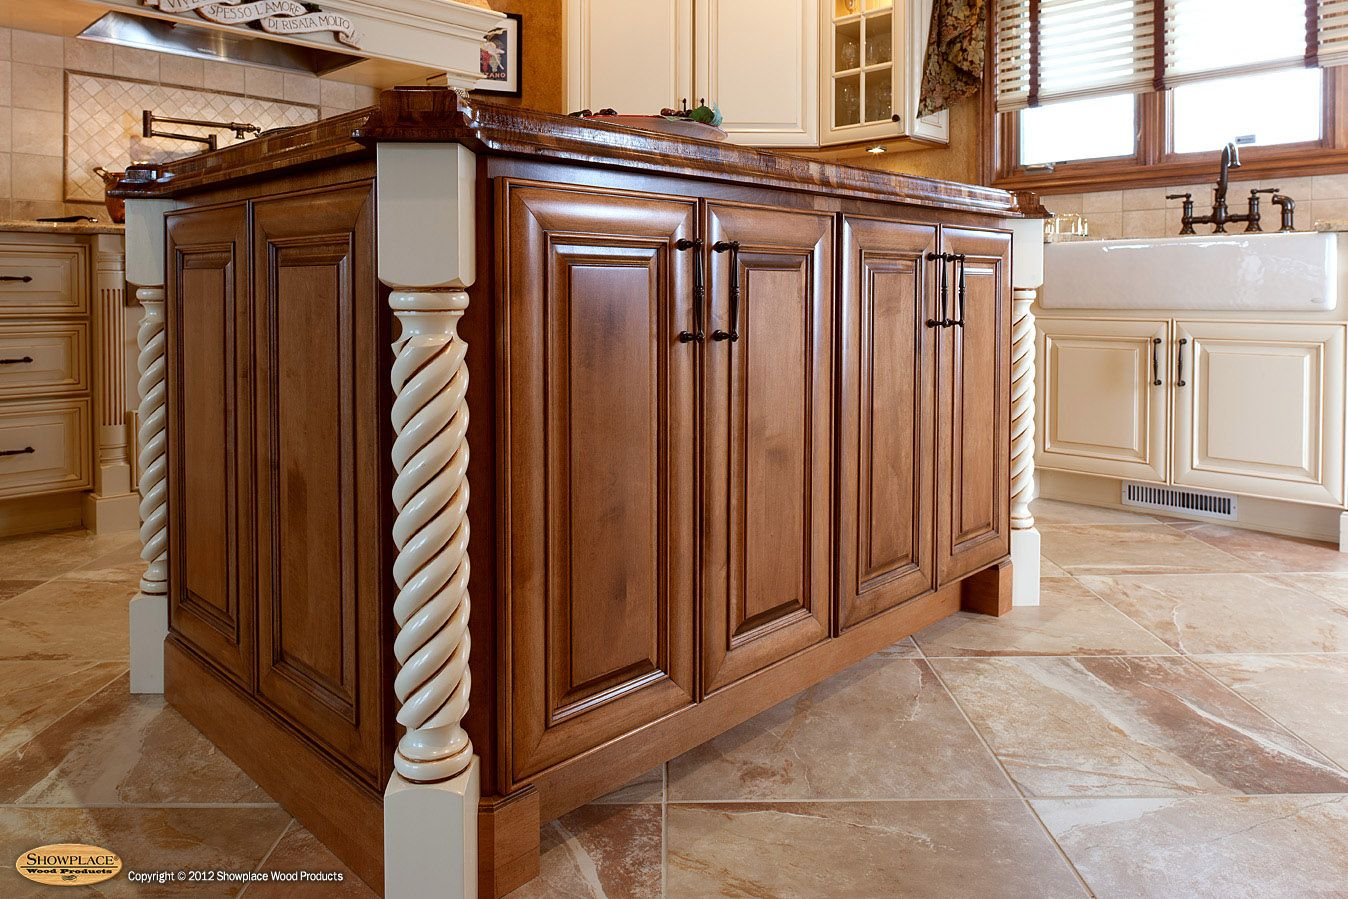 The Maple Autumn Island Is Accented With Ebony Hand Glazing Diagonal Corner Posts In A Spiral Pat Kitchen Layouts With Island Walnut Island Top Kitchen Layout